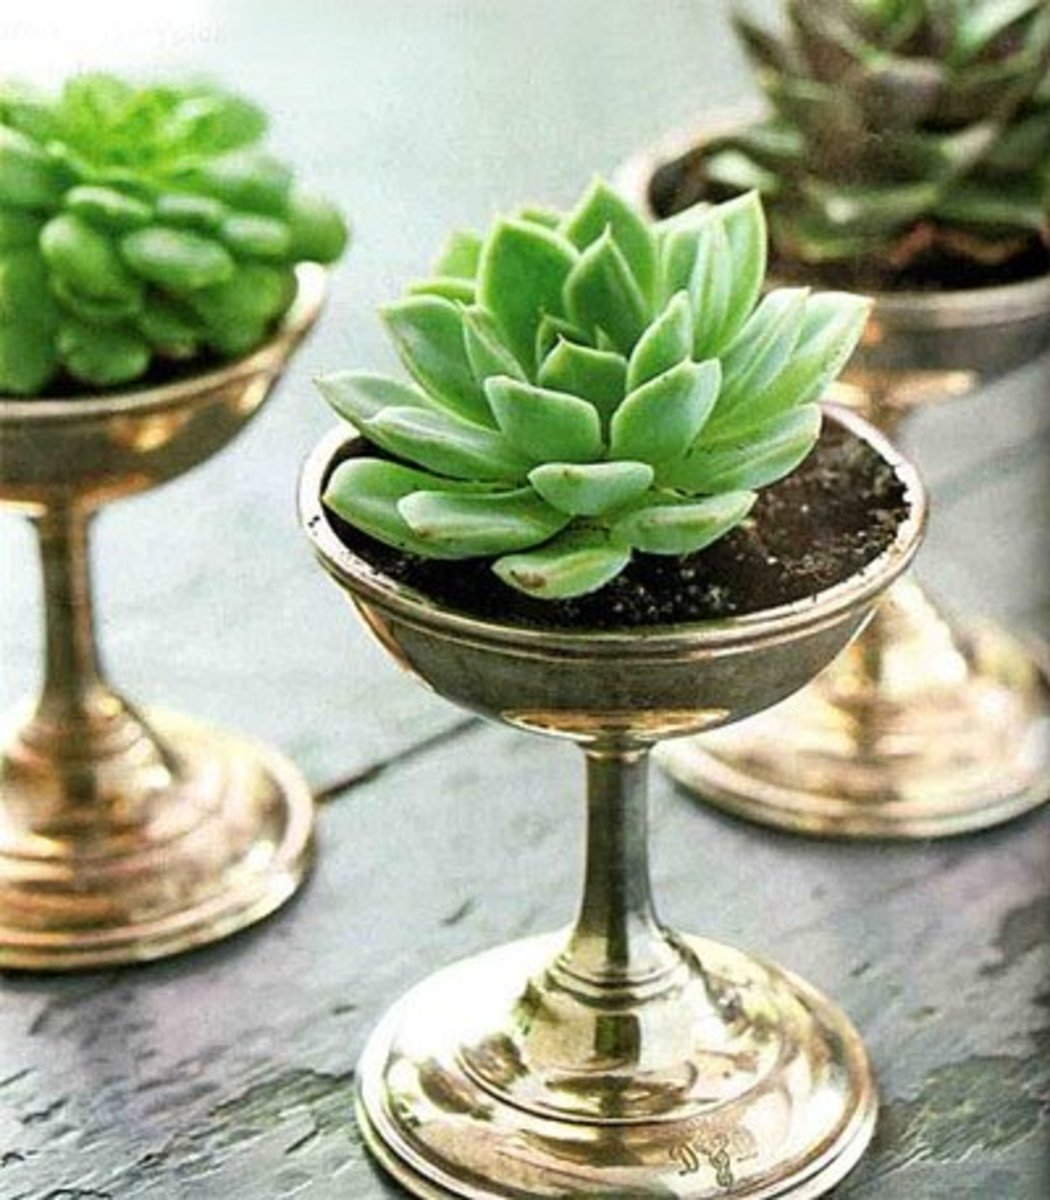 Adorable pewter glass planters for indoors. I'm not sure where the hole is in these ones, but if you put a hole somewhere inconspicuous, it will increase the time between repottings.